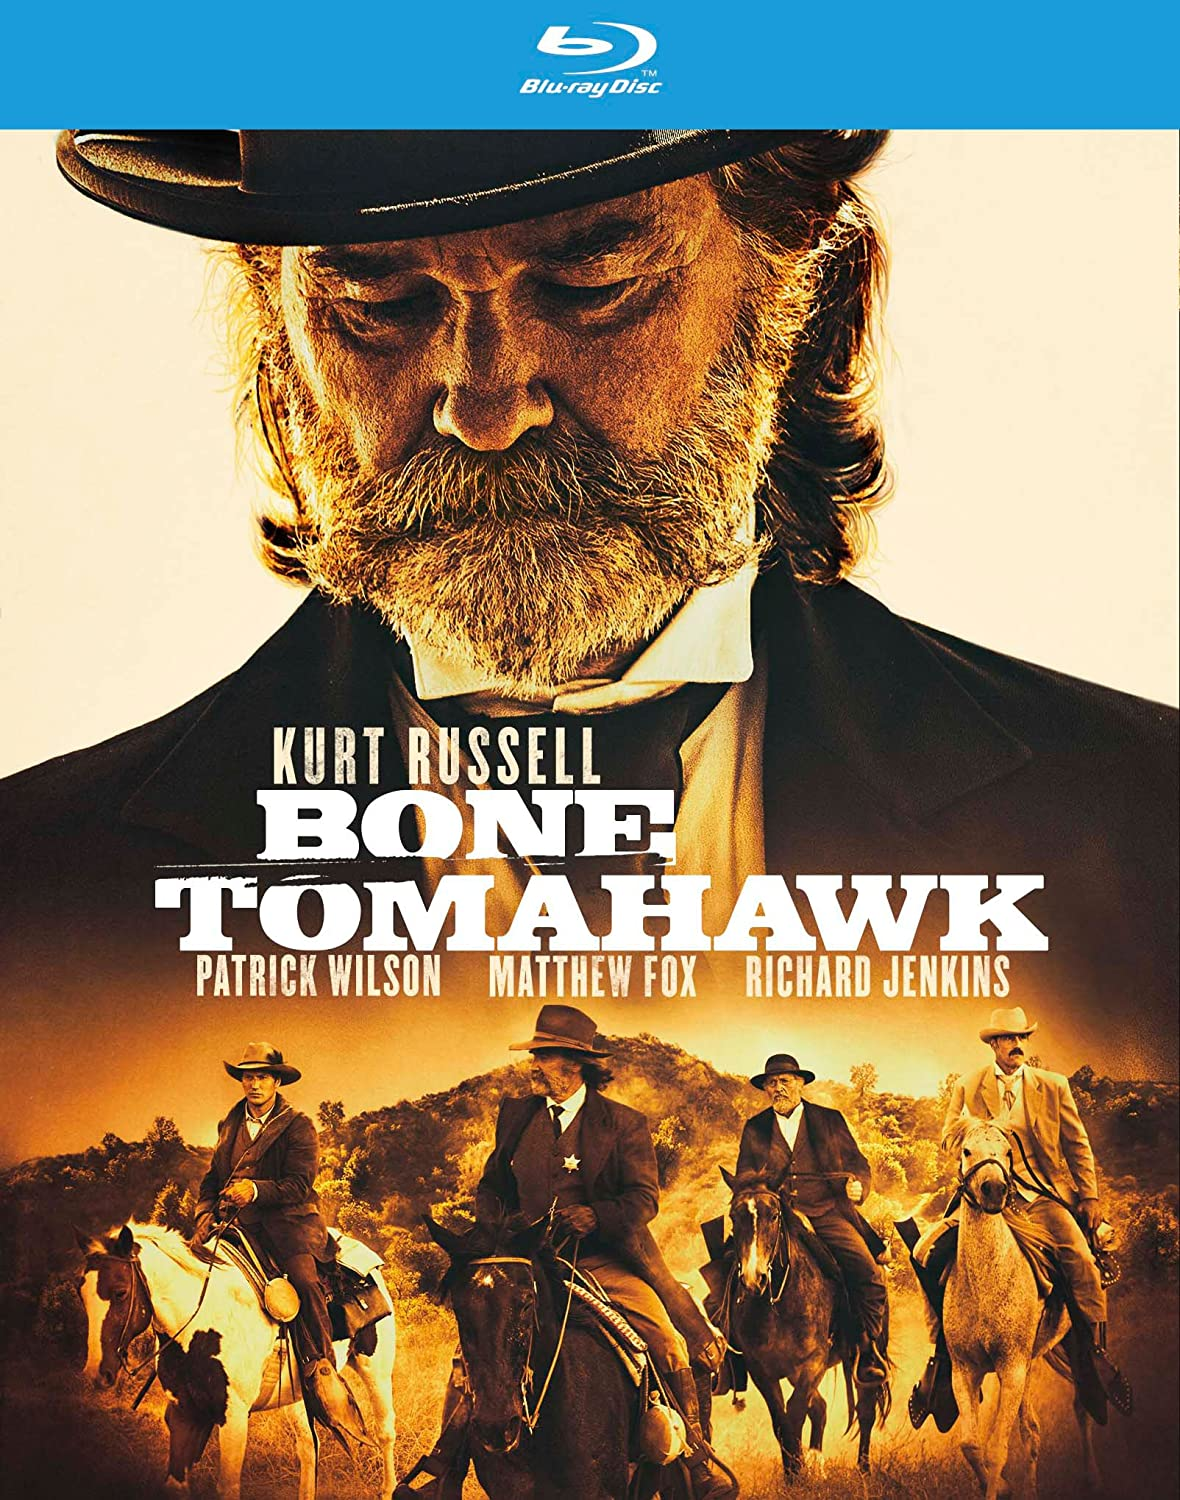 Bone Tomahawk [Blu-ray] Kurt Russell Patrick Wilson 35219433 Movie